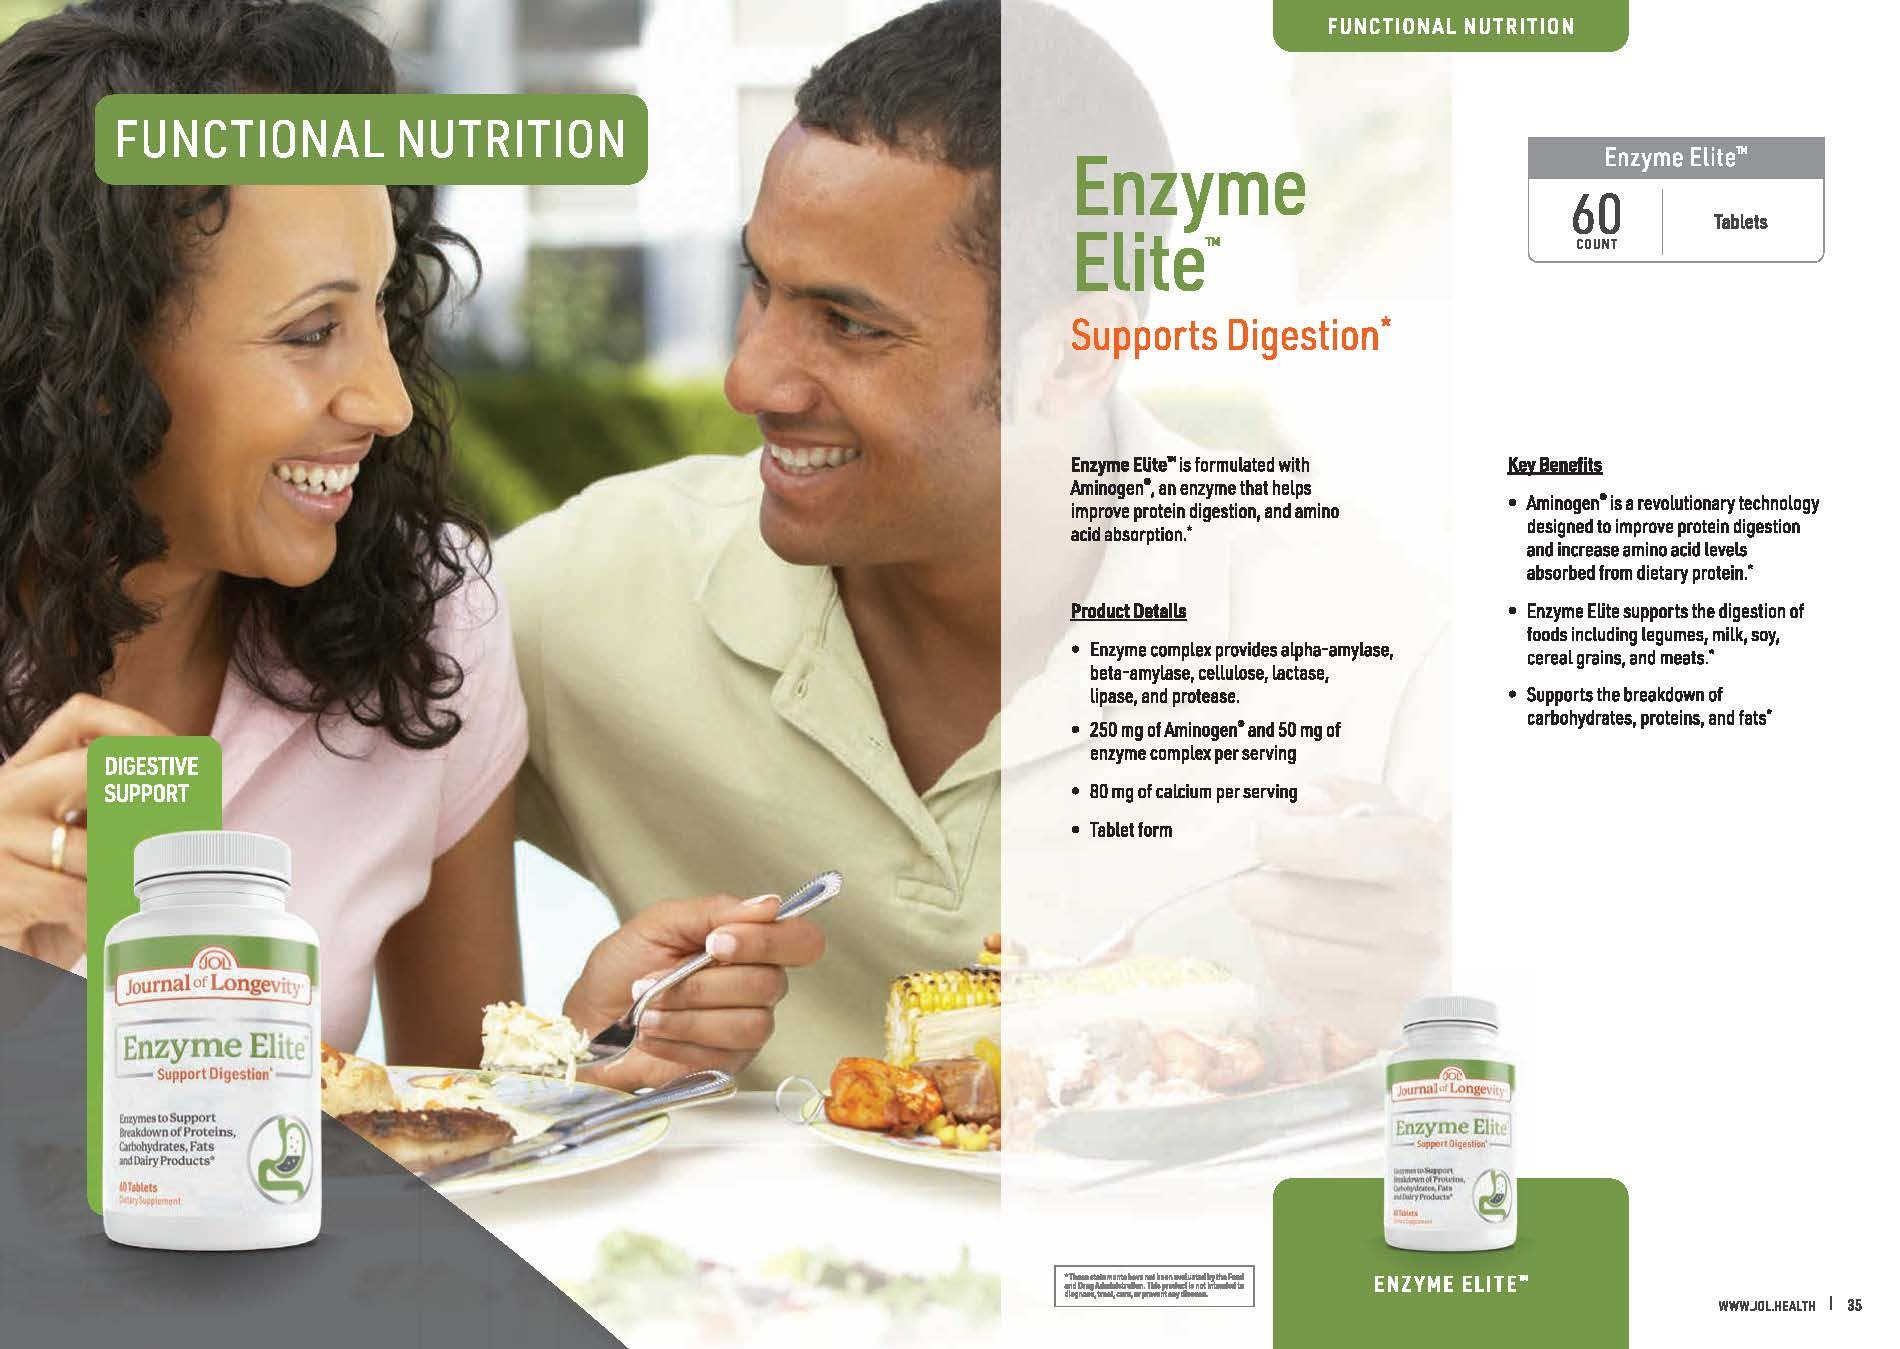 Journal of Longevity Enzyme Elite Supplement Vitamin For Protein Digestion Support With Aminogen